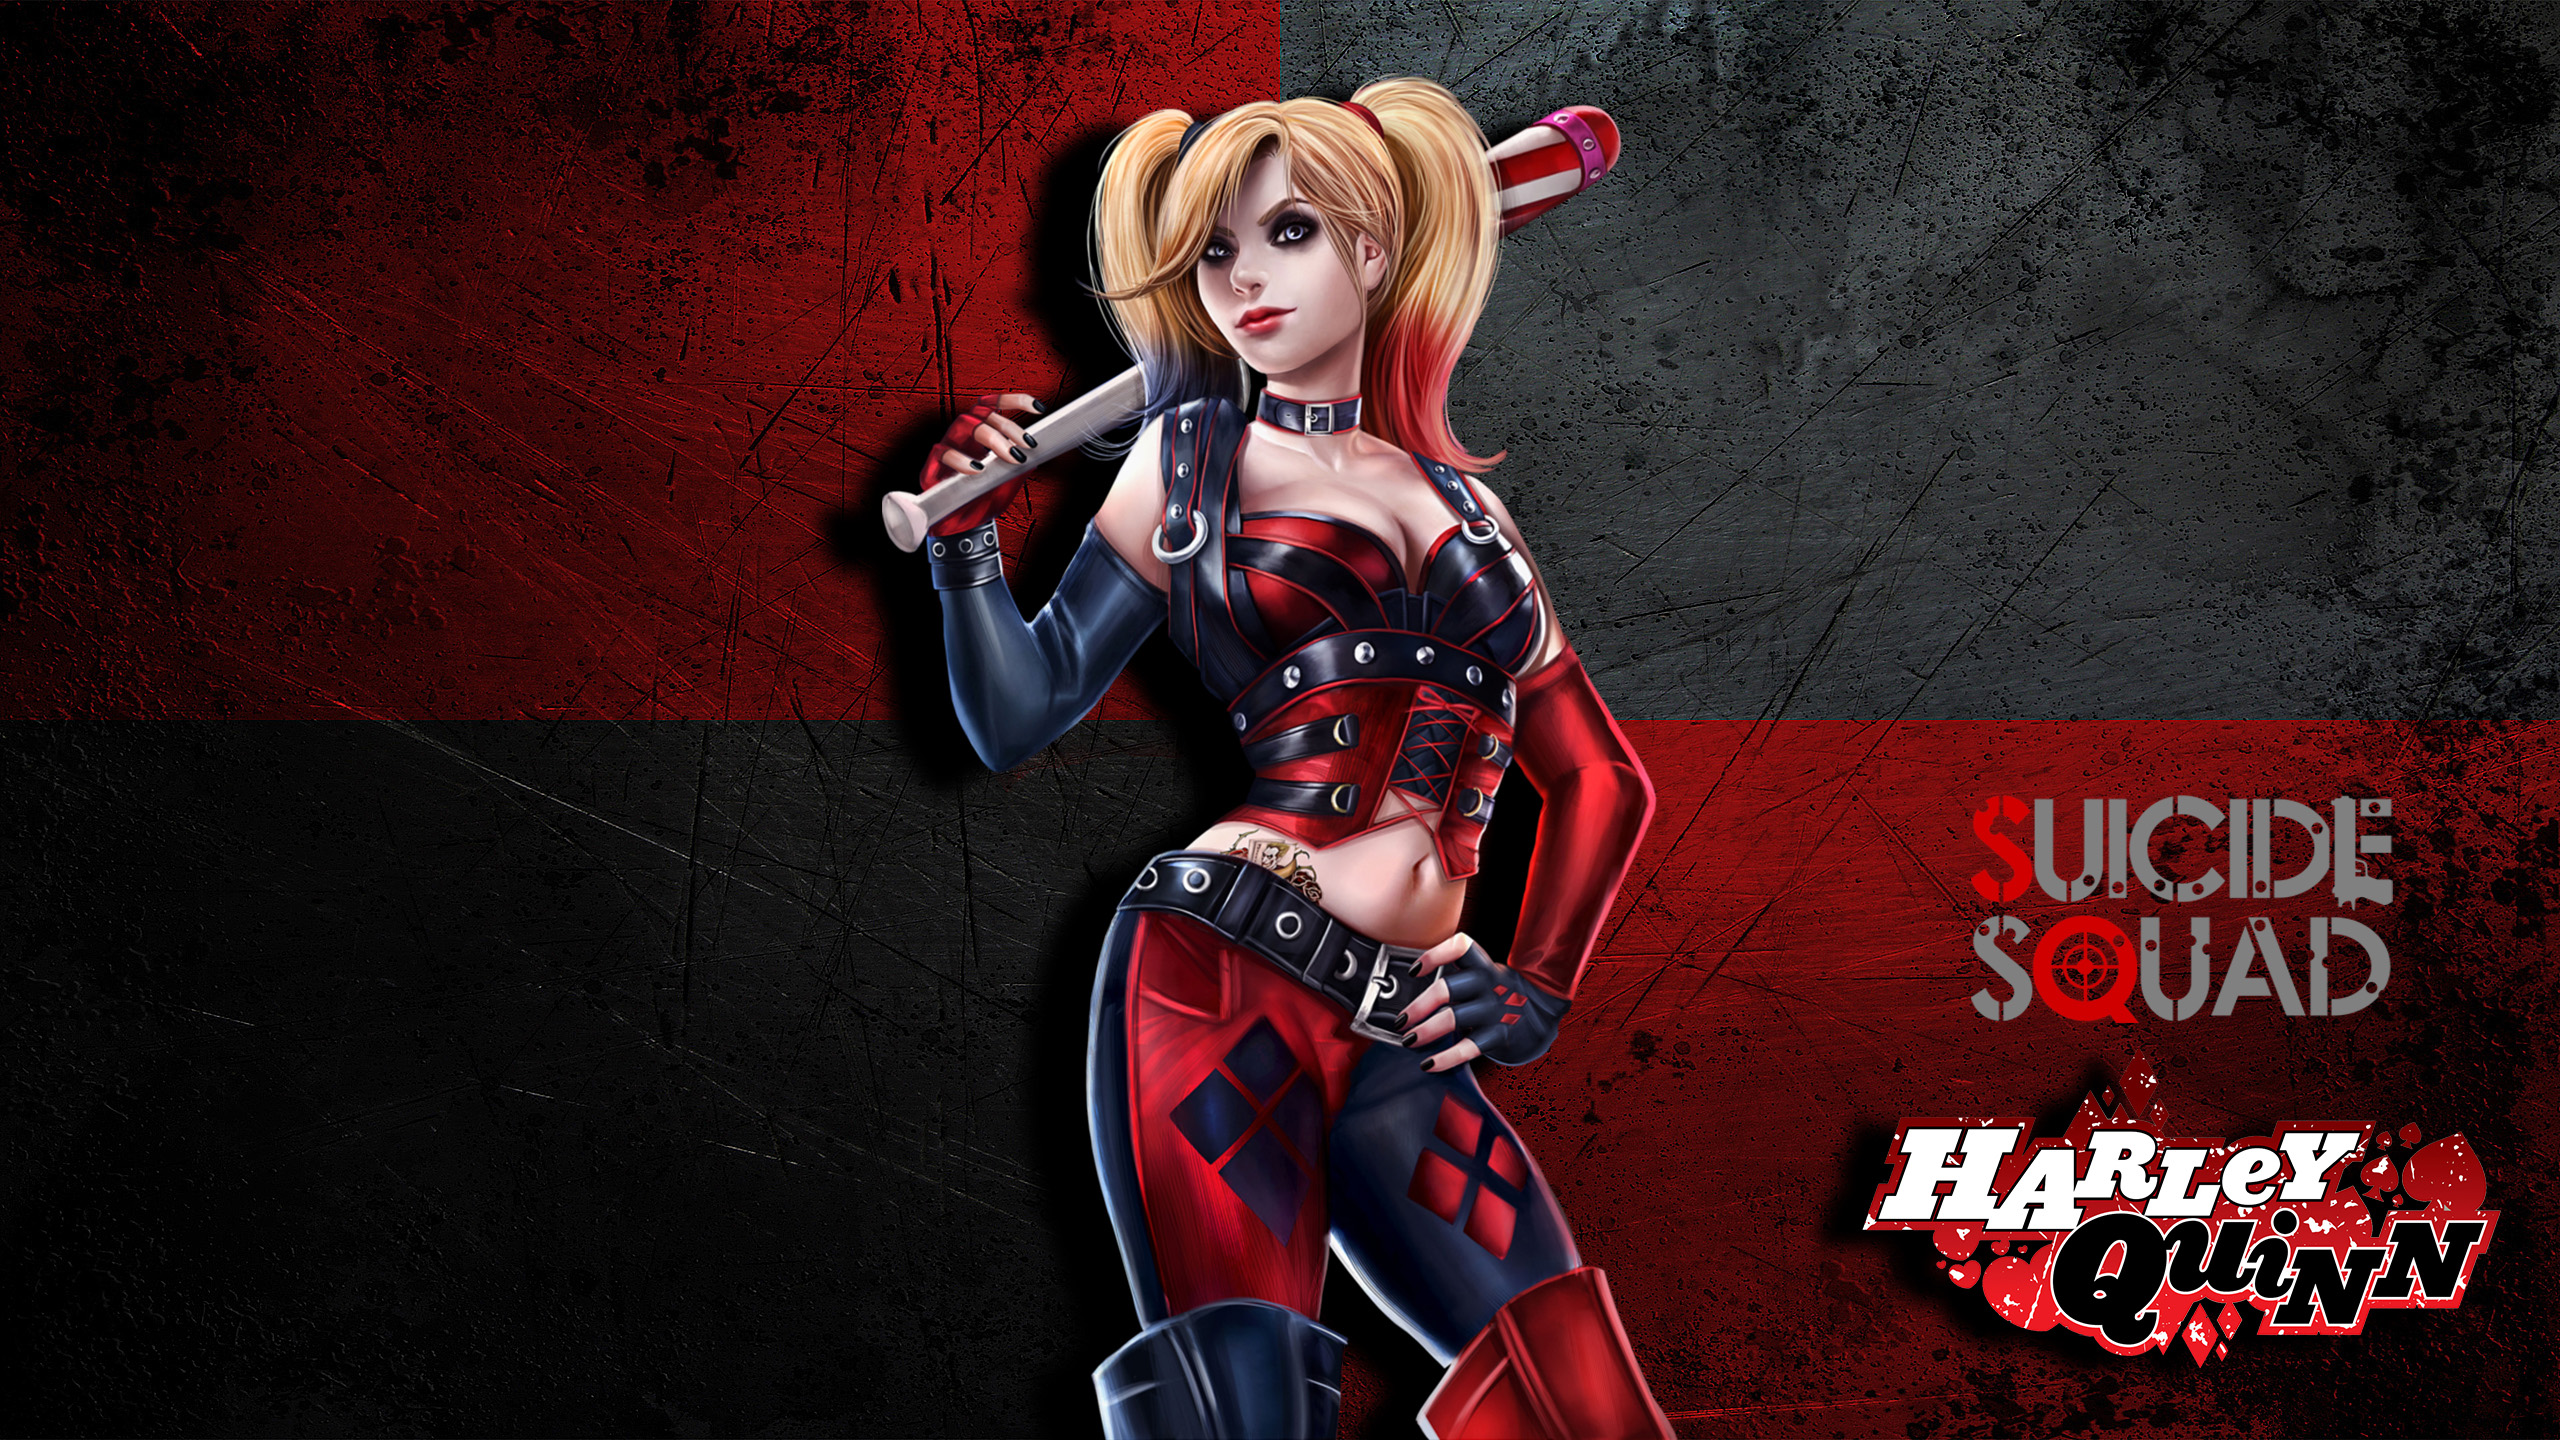 Suicide Squad 2016 Movie wallpaper Harley Quinn HD Wallpapers 2560x1440